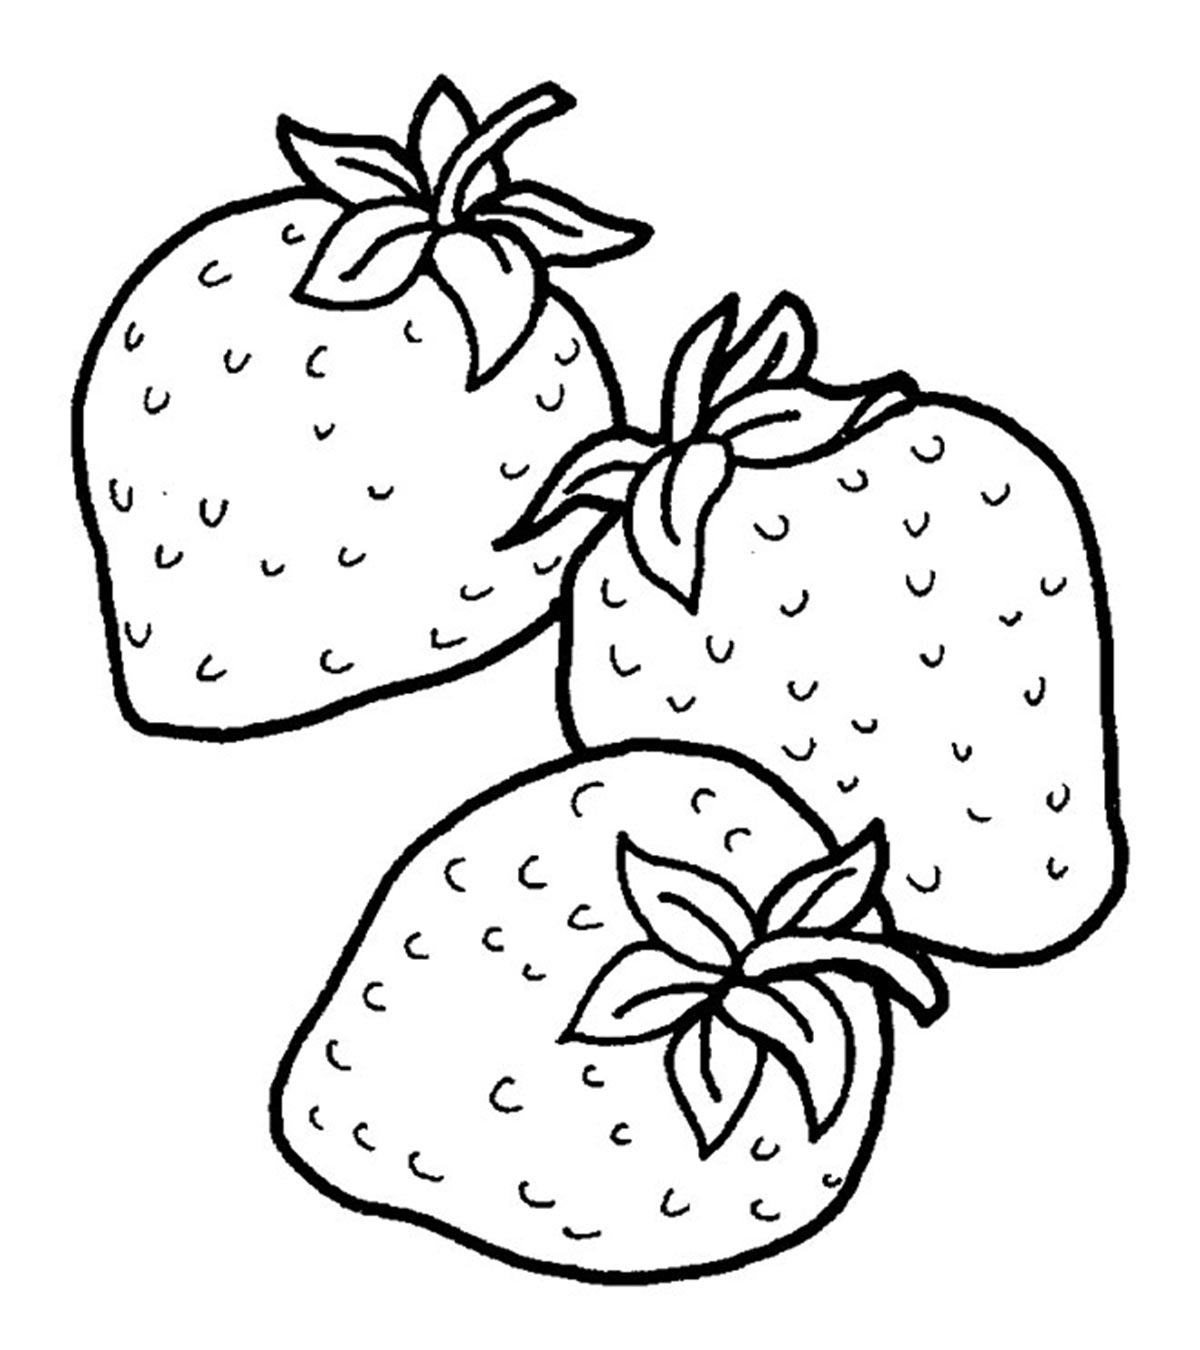 strawberry for coloring strawberry coloring pages to download and print for free coloring strawberry for